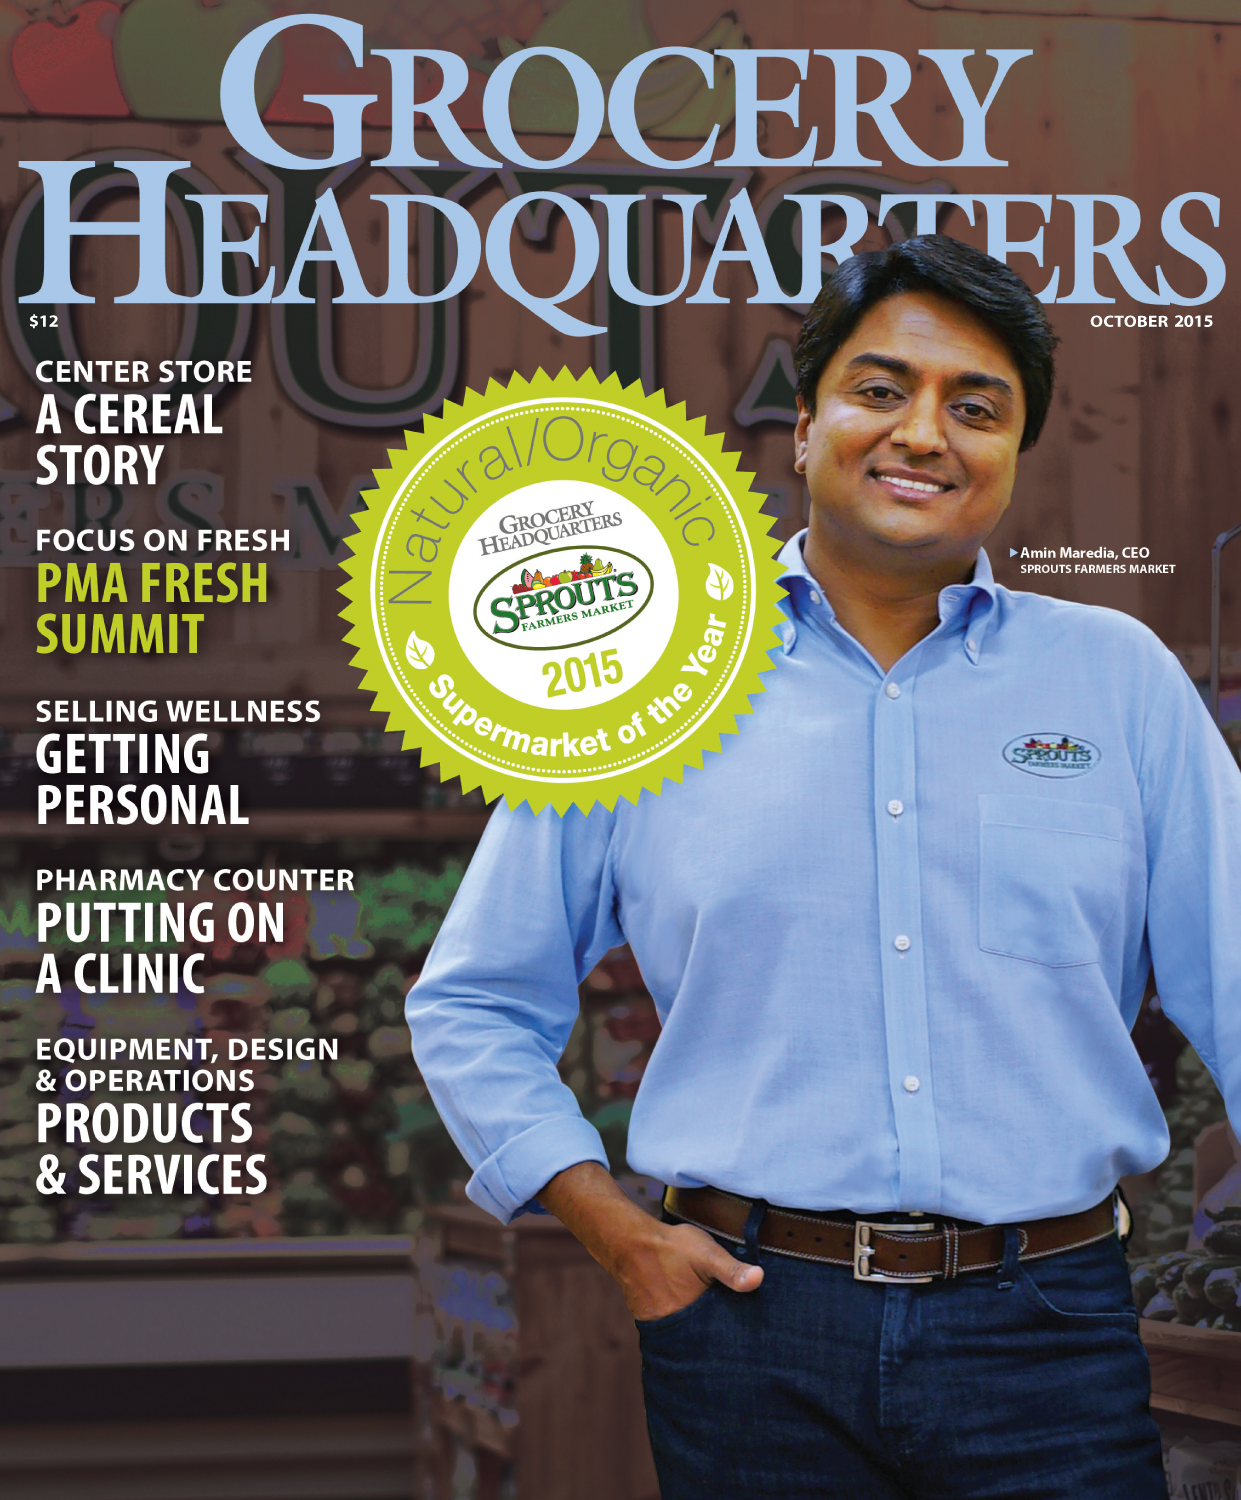 Winsight Grocery Business Magazine October 2015 Issue